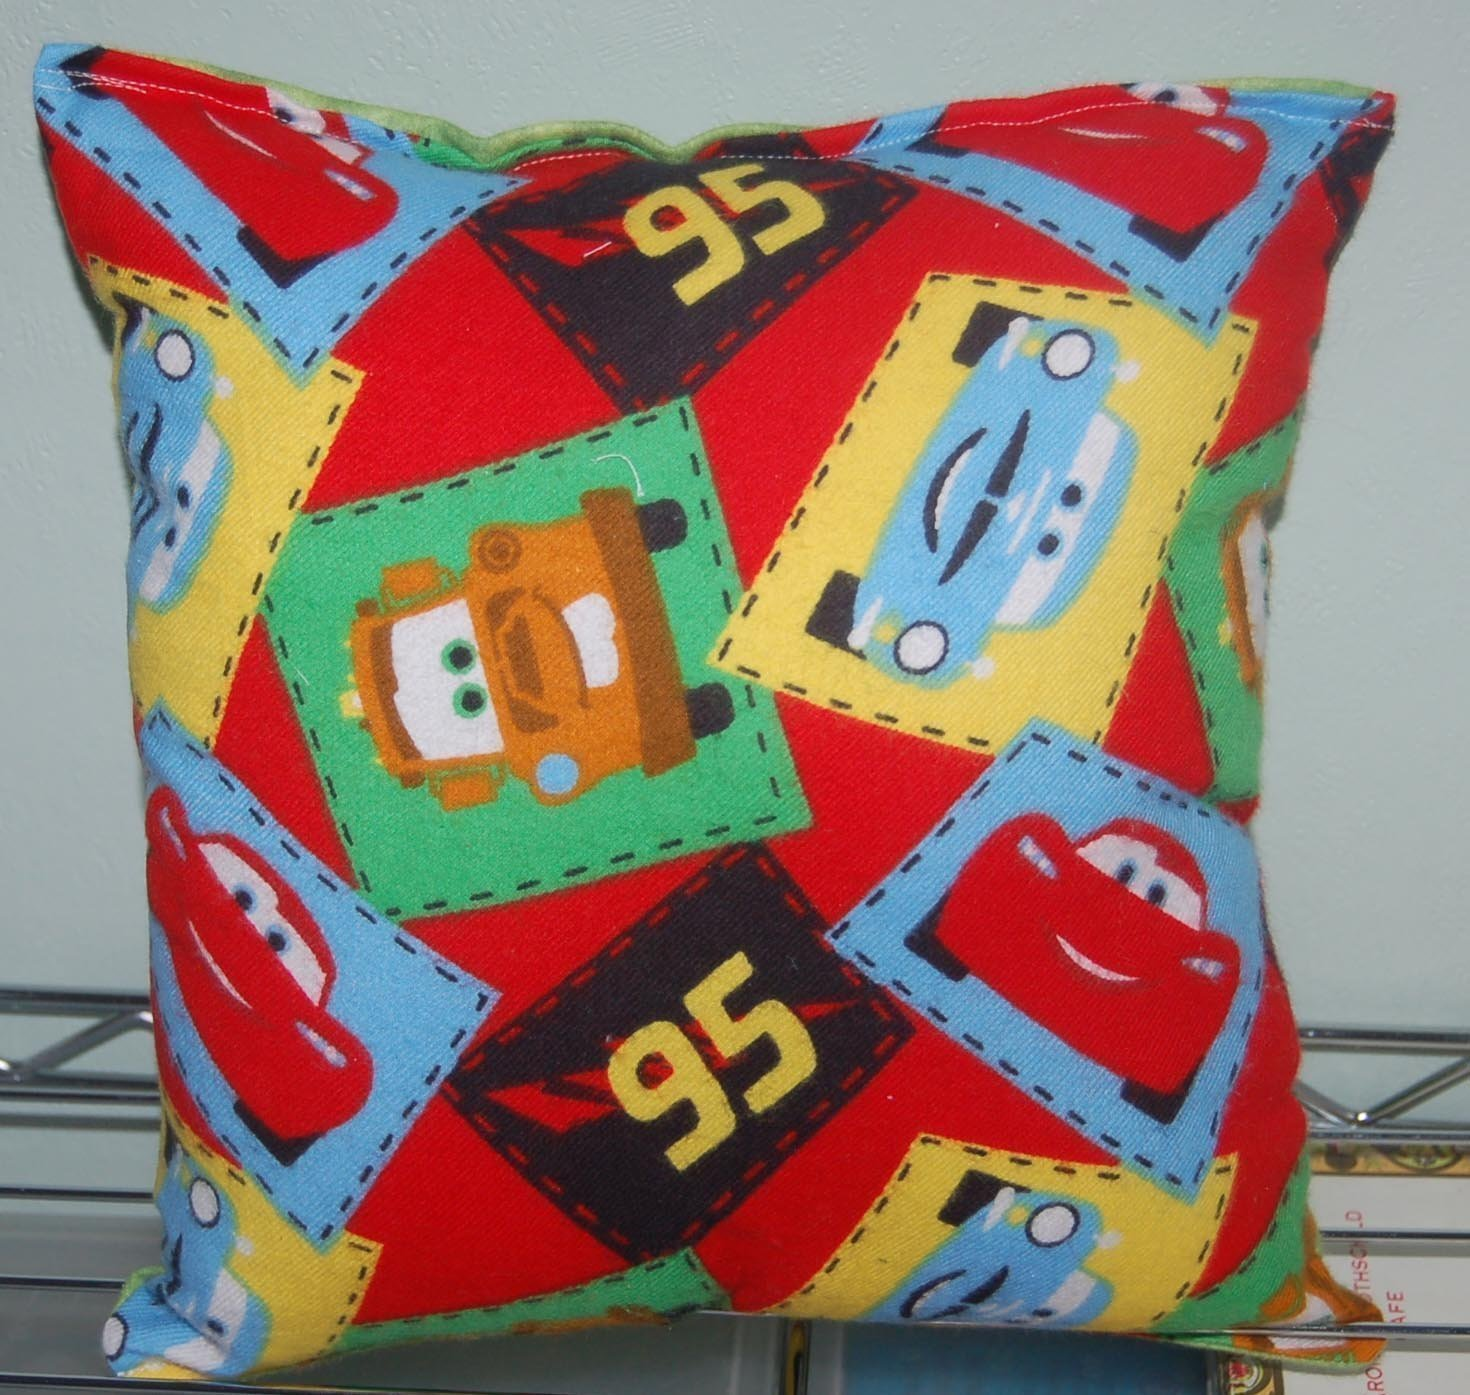 "Cars Pillow Disney Cars Pillow HANDMADE McQueen Mater Pillow Nursery Style Made in USA Pillow is approximately 10"" X 11"